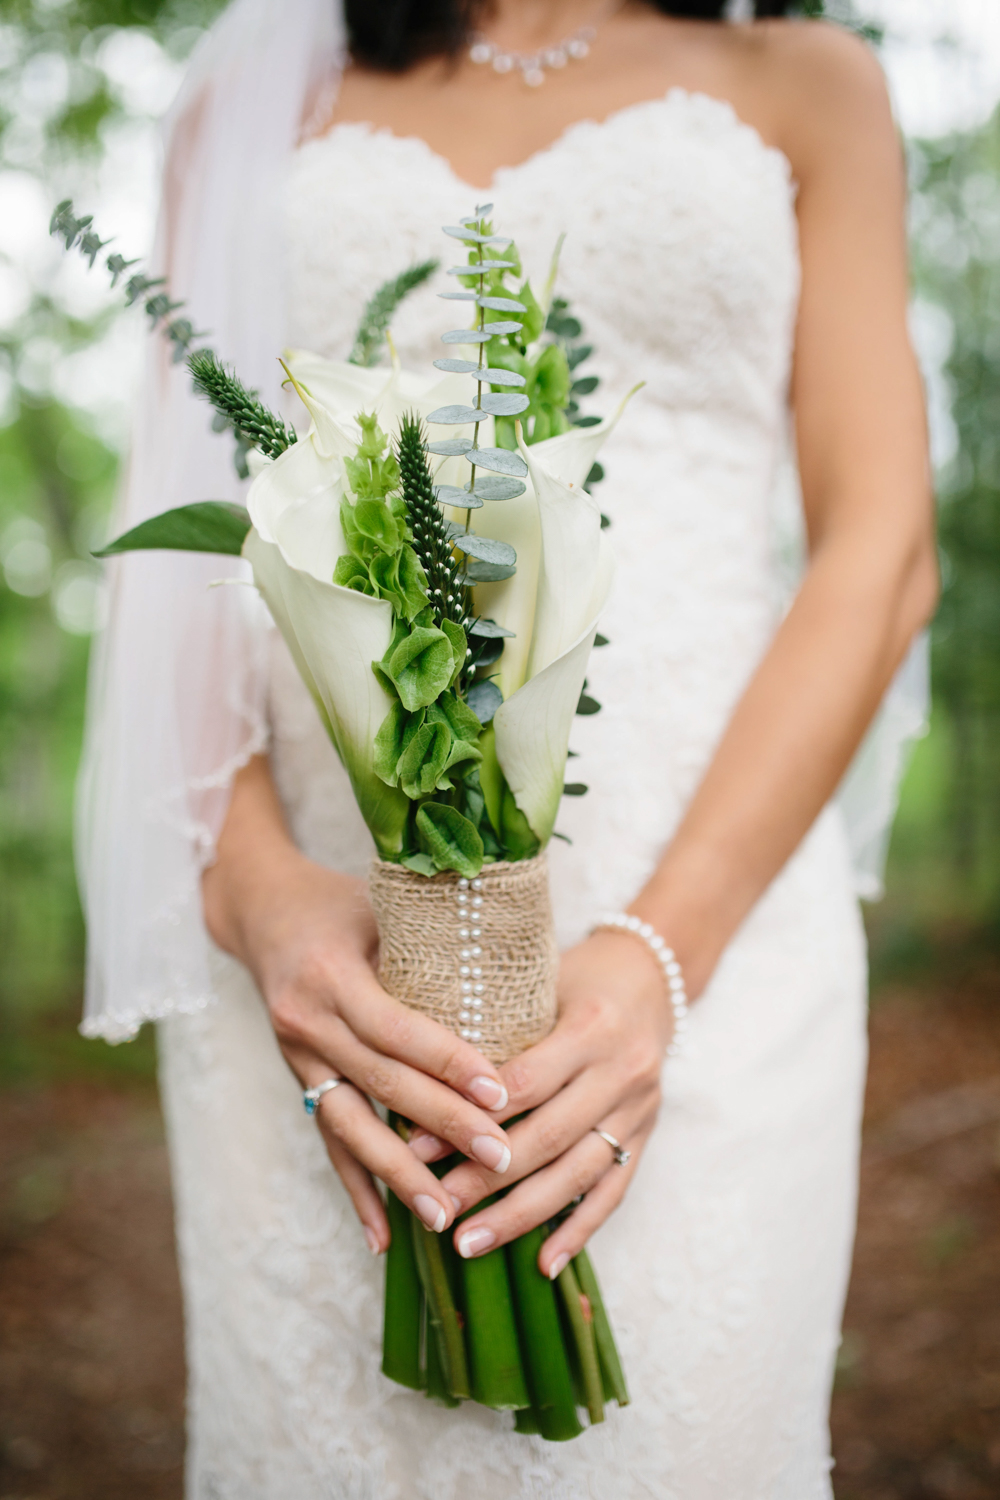 Page Perrault - Dahlonega, GA Wedding Photographer